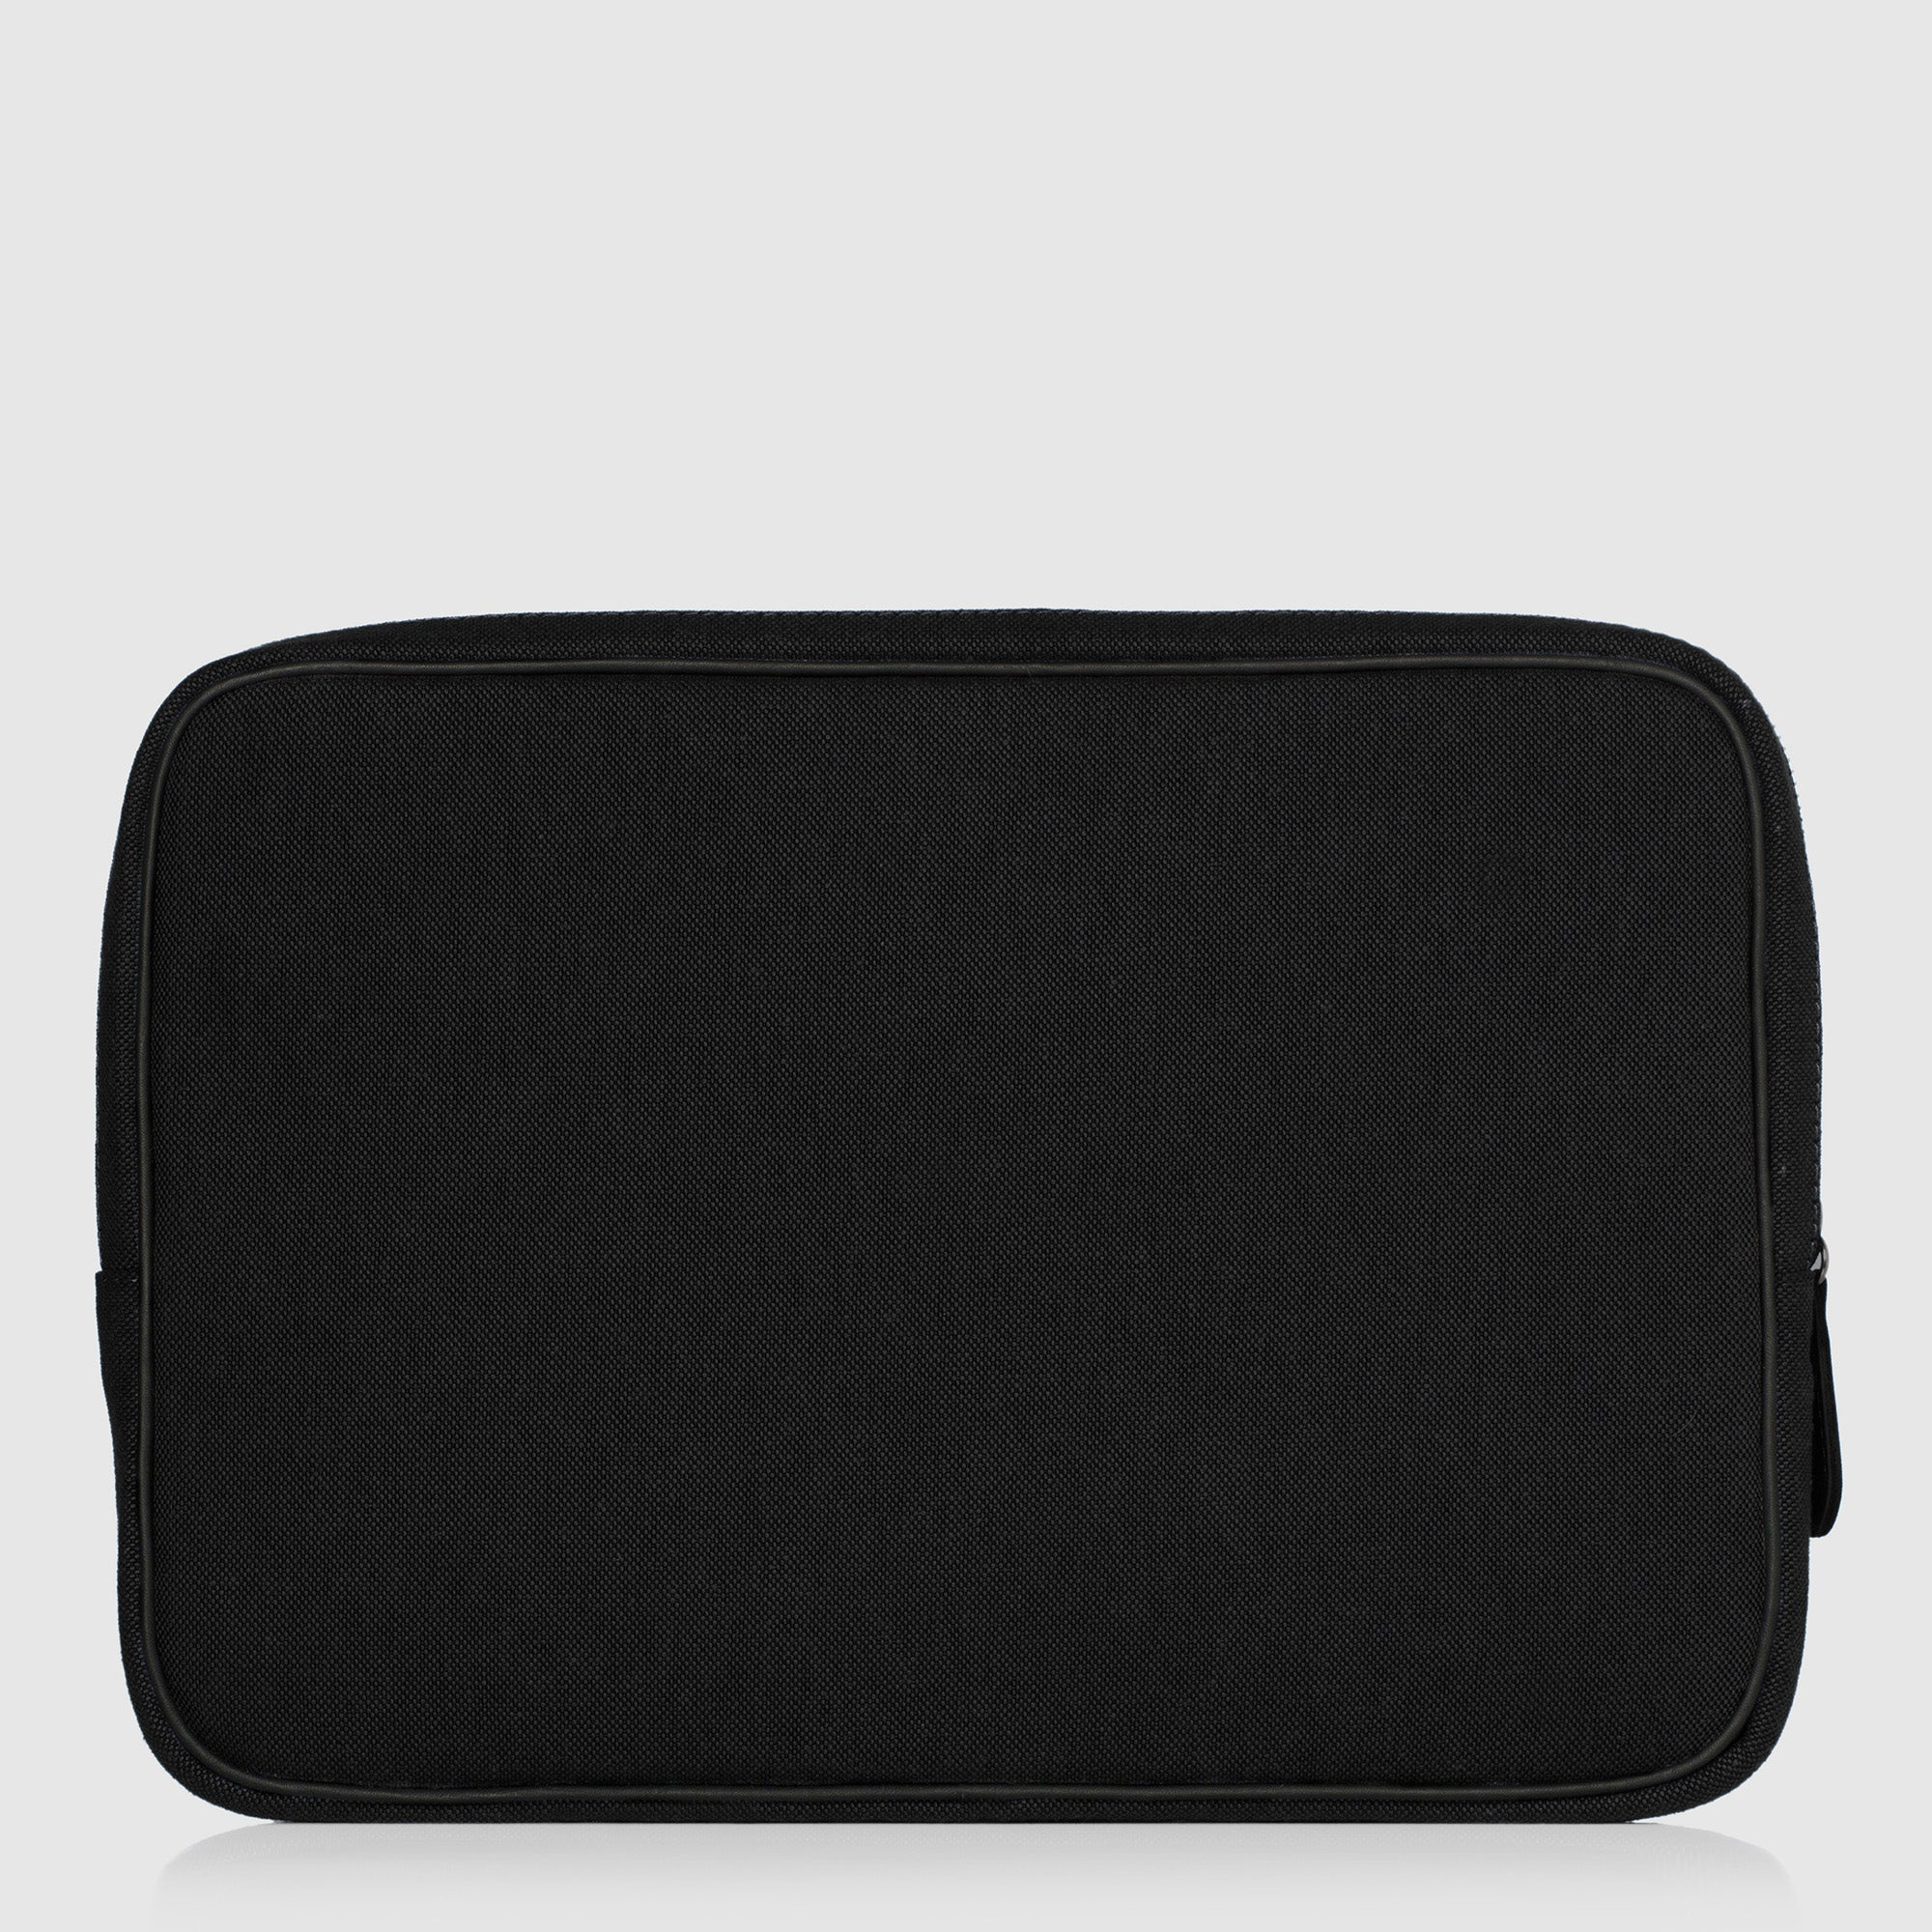 Outlander Sleeve Black para MacBook